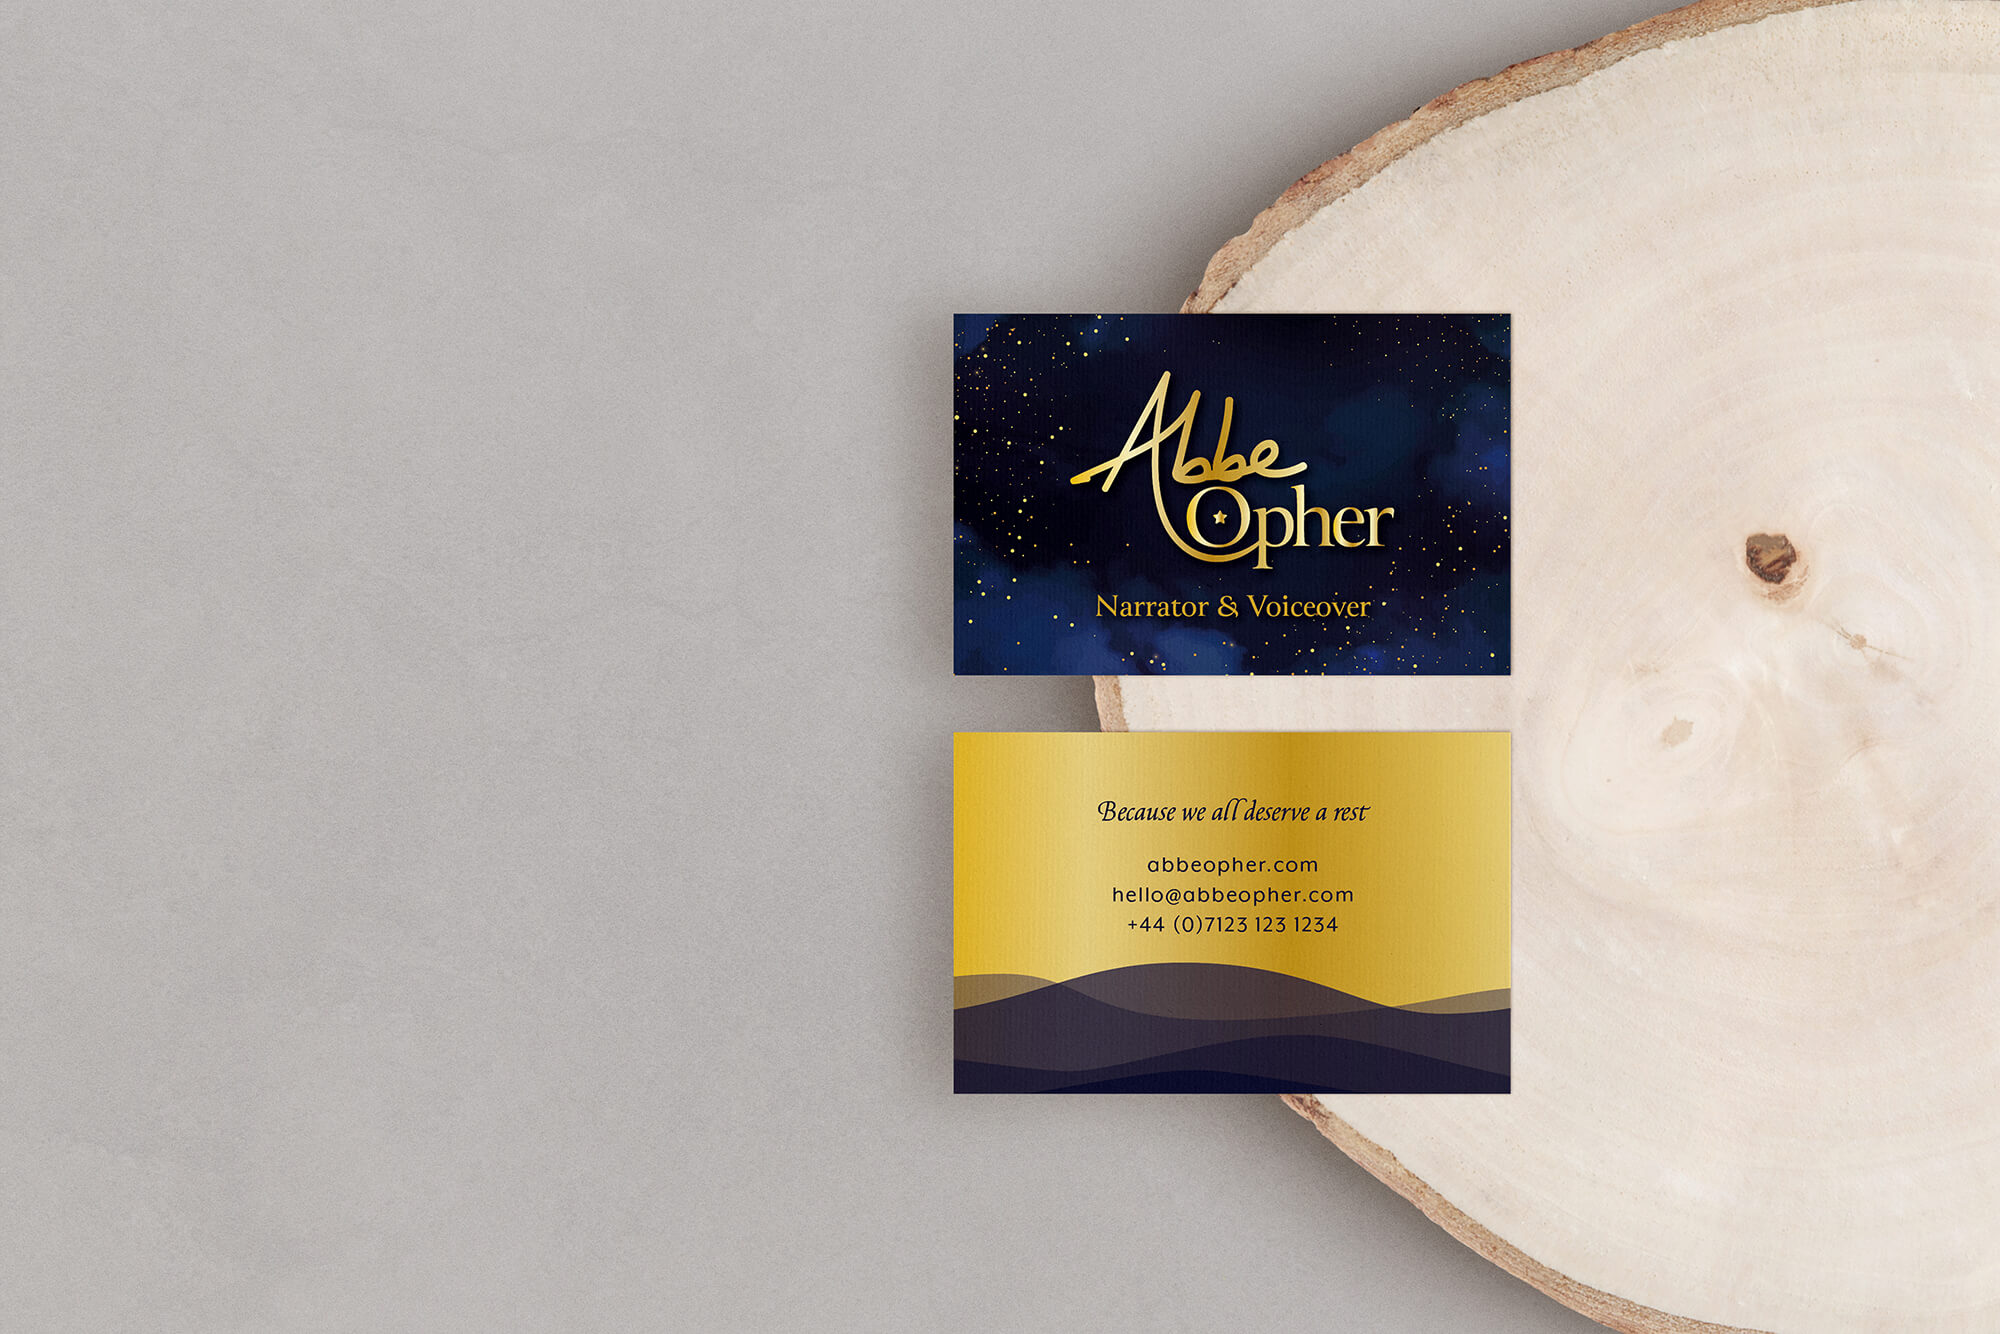 Abbe Opher voiceover and narrator business cards